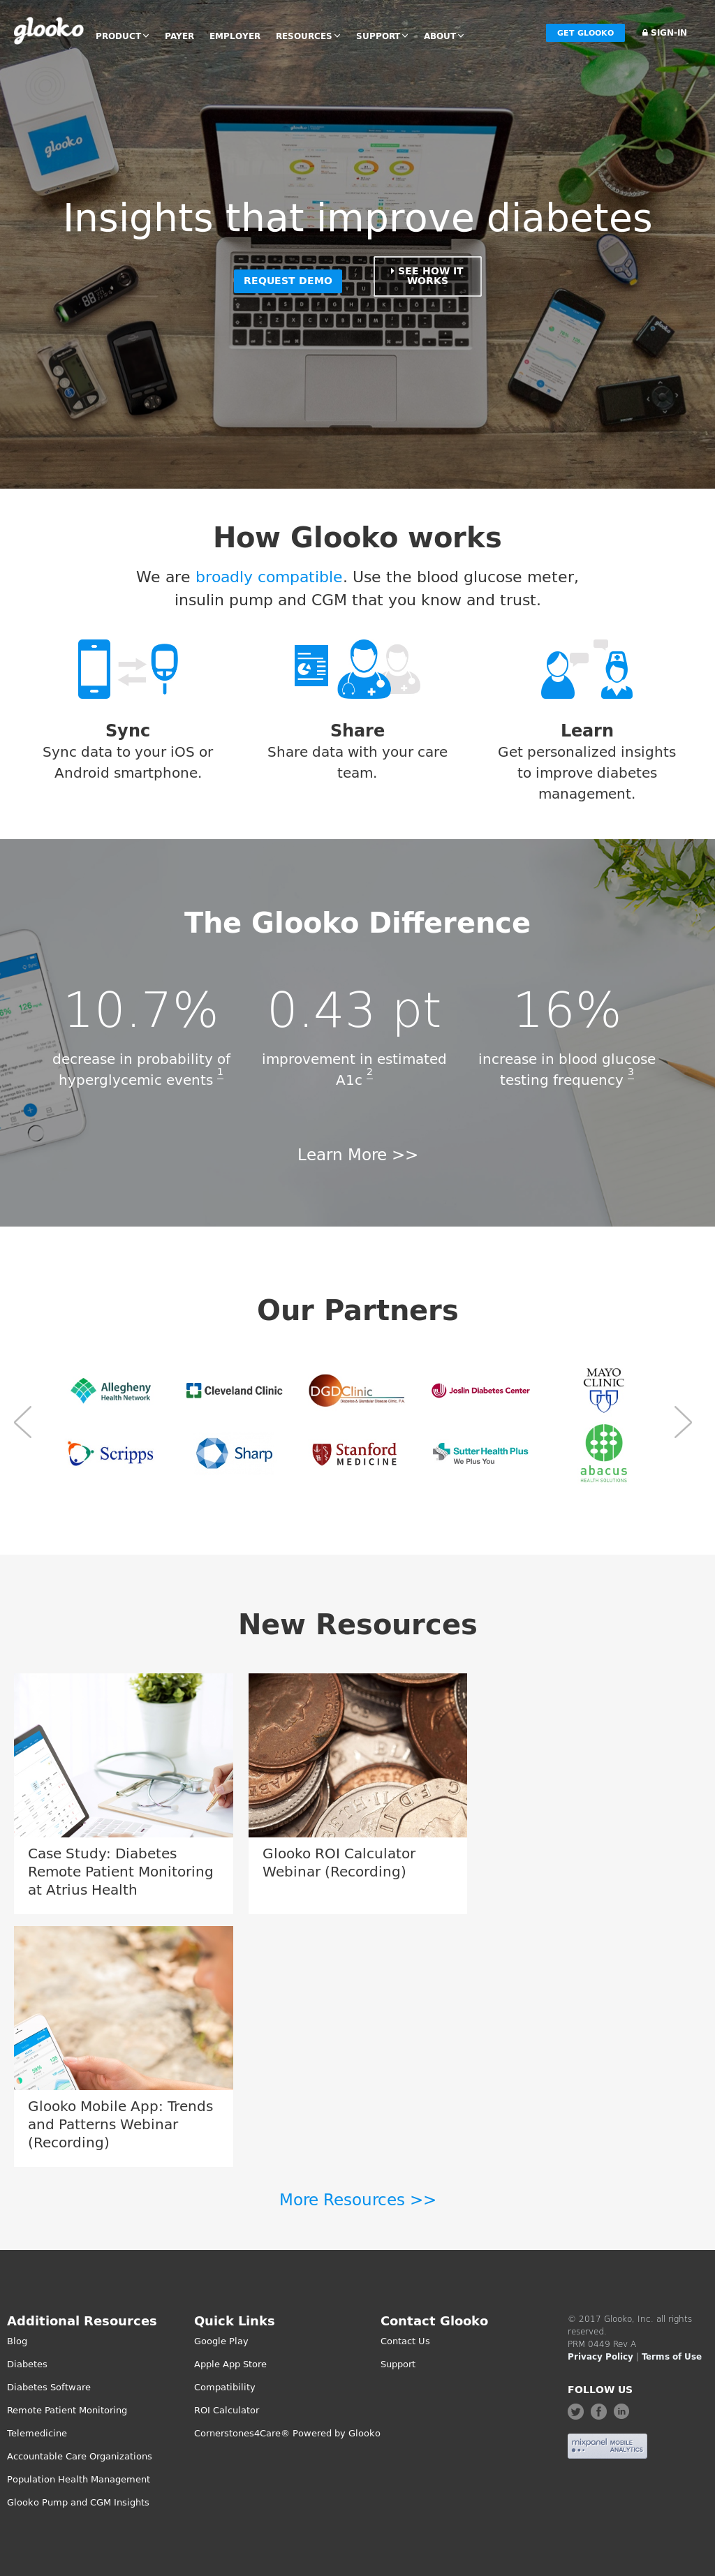 Glooko Competitors, Revenue and Employees - Owler Company Profile